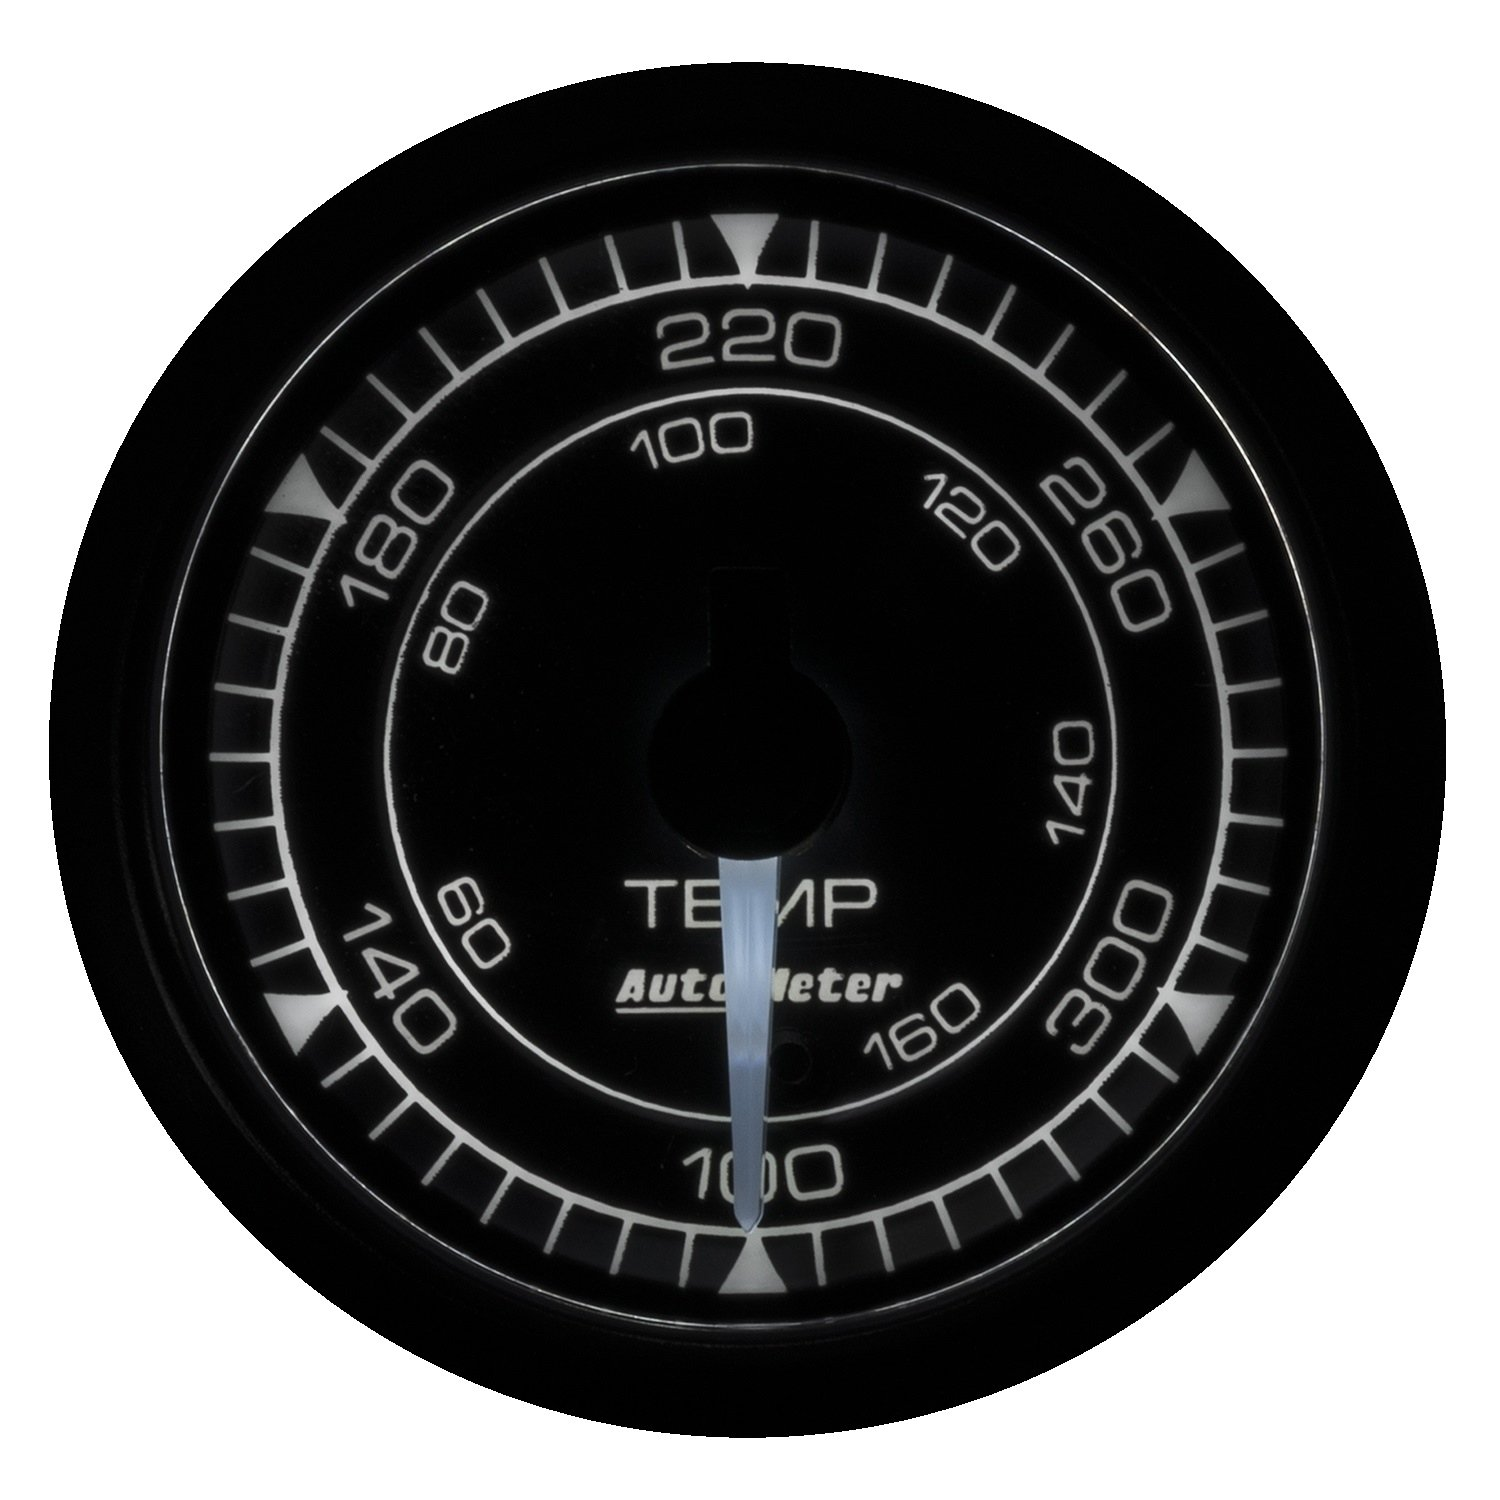 AutoMeter 8140 Chrono Oil Temperature Gauge 2-1/16 in. Black Dial Face White LED Electric Digital Stepper Motor 140-380 Degree F Chrono Oil Temperature Gauge